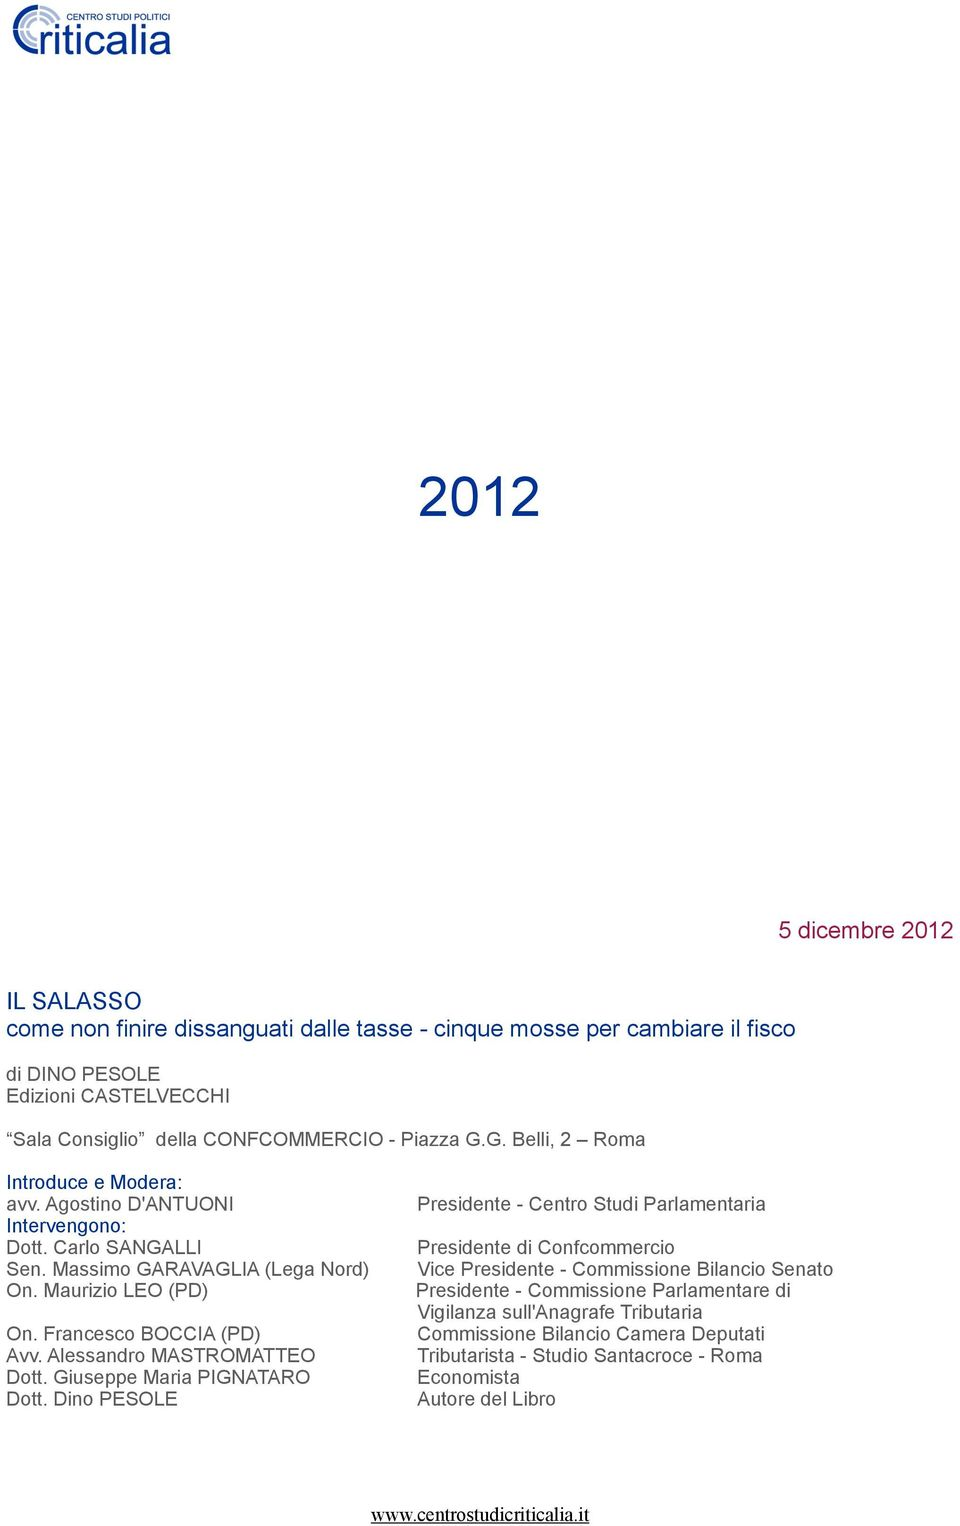 Pdf for Commissione bilancio camera